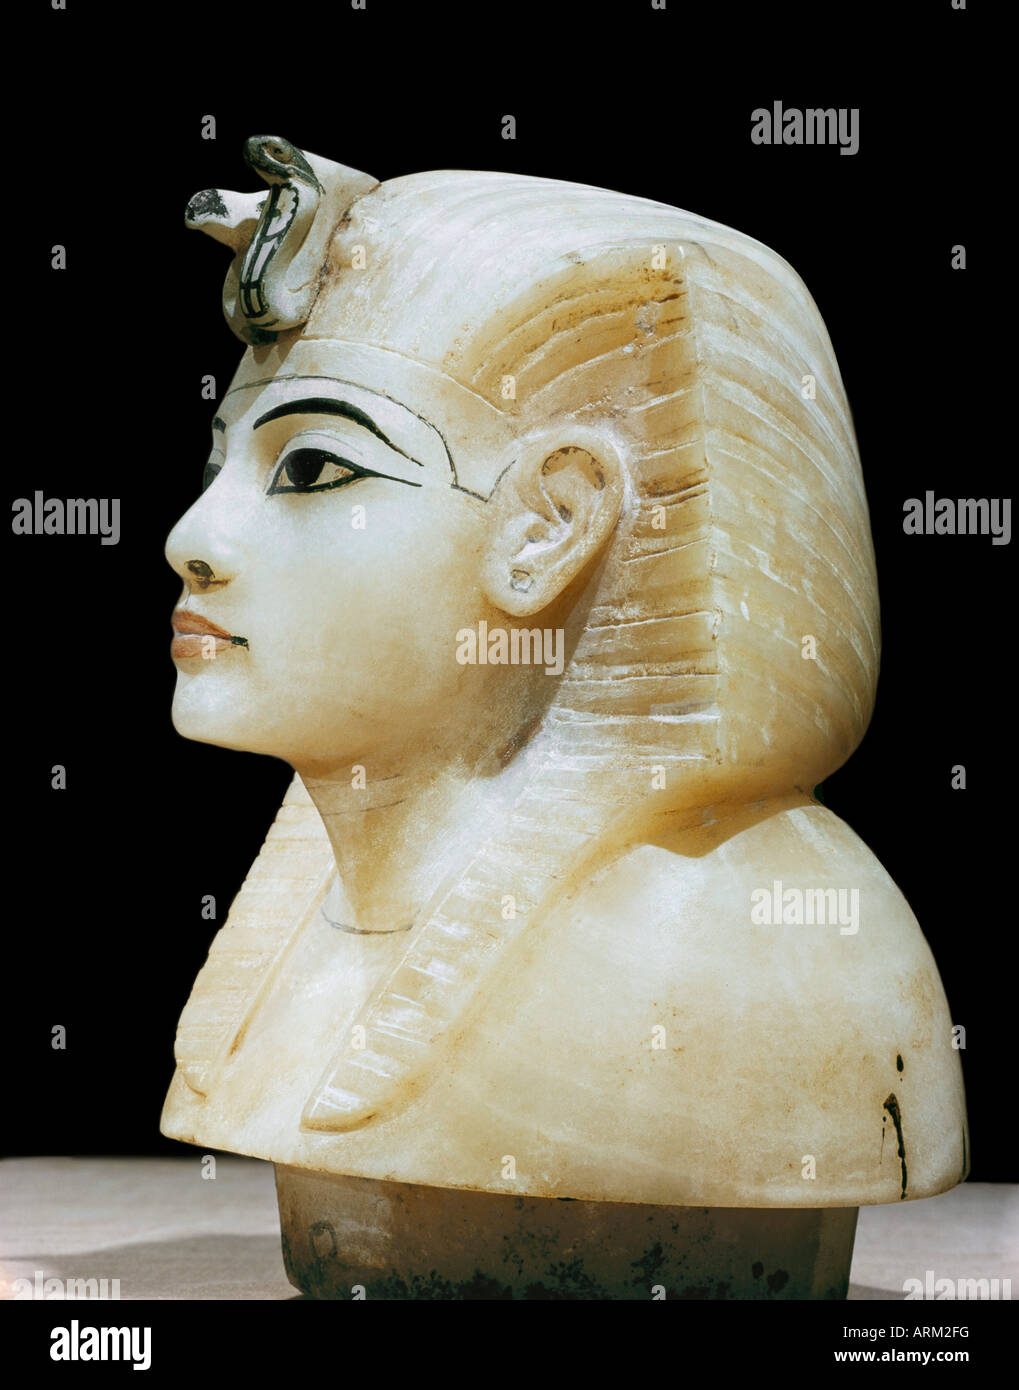 Stopper in the form of the king's head from one of the four canopic urns, from the tomb of the pharaoh Tutankhamun - Stock Image